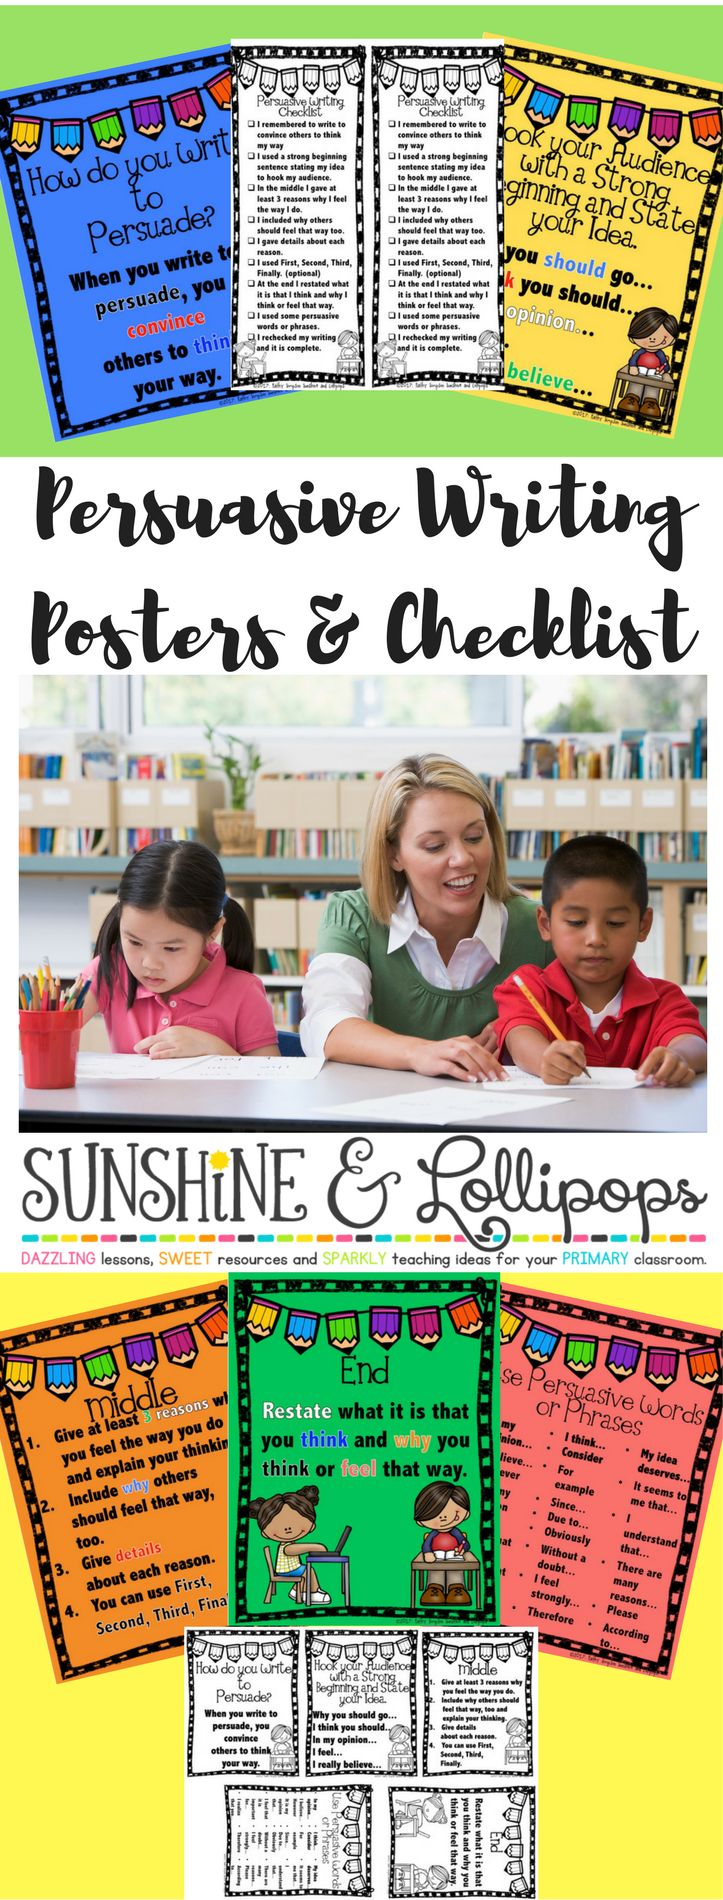 Persuasive Writing:  Hot Off the Press!! $1.00 until March 4th!  Do you want to make your life easier? I am sure you do...so...these Persuasive Writing Posters and Checklist will make teaching and learning how to write persuasively so easy for everyone involved! Check it out!